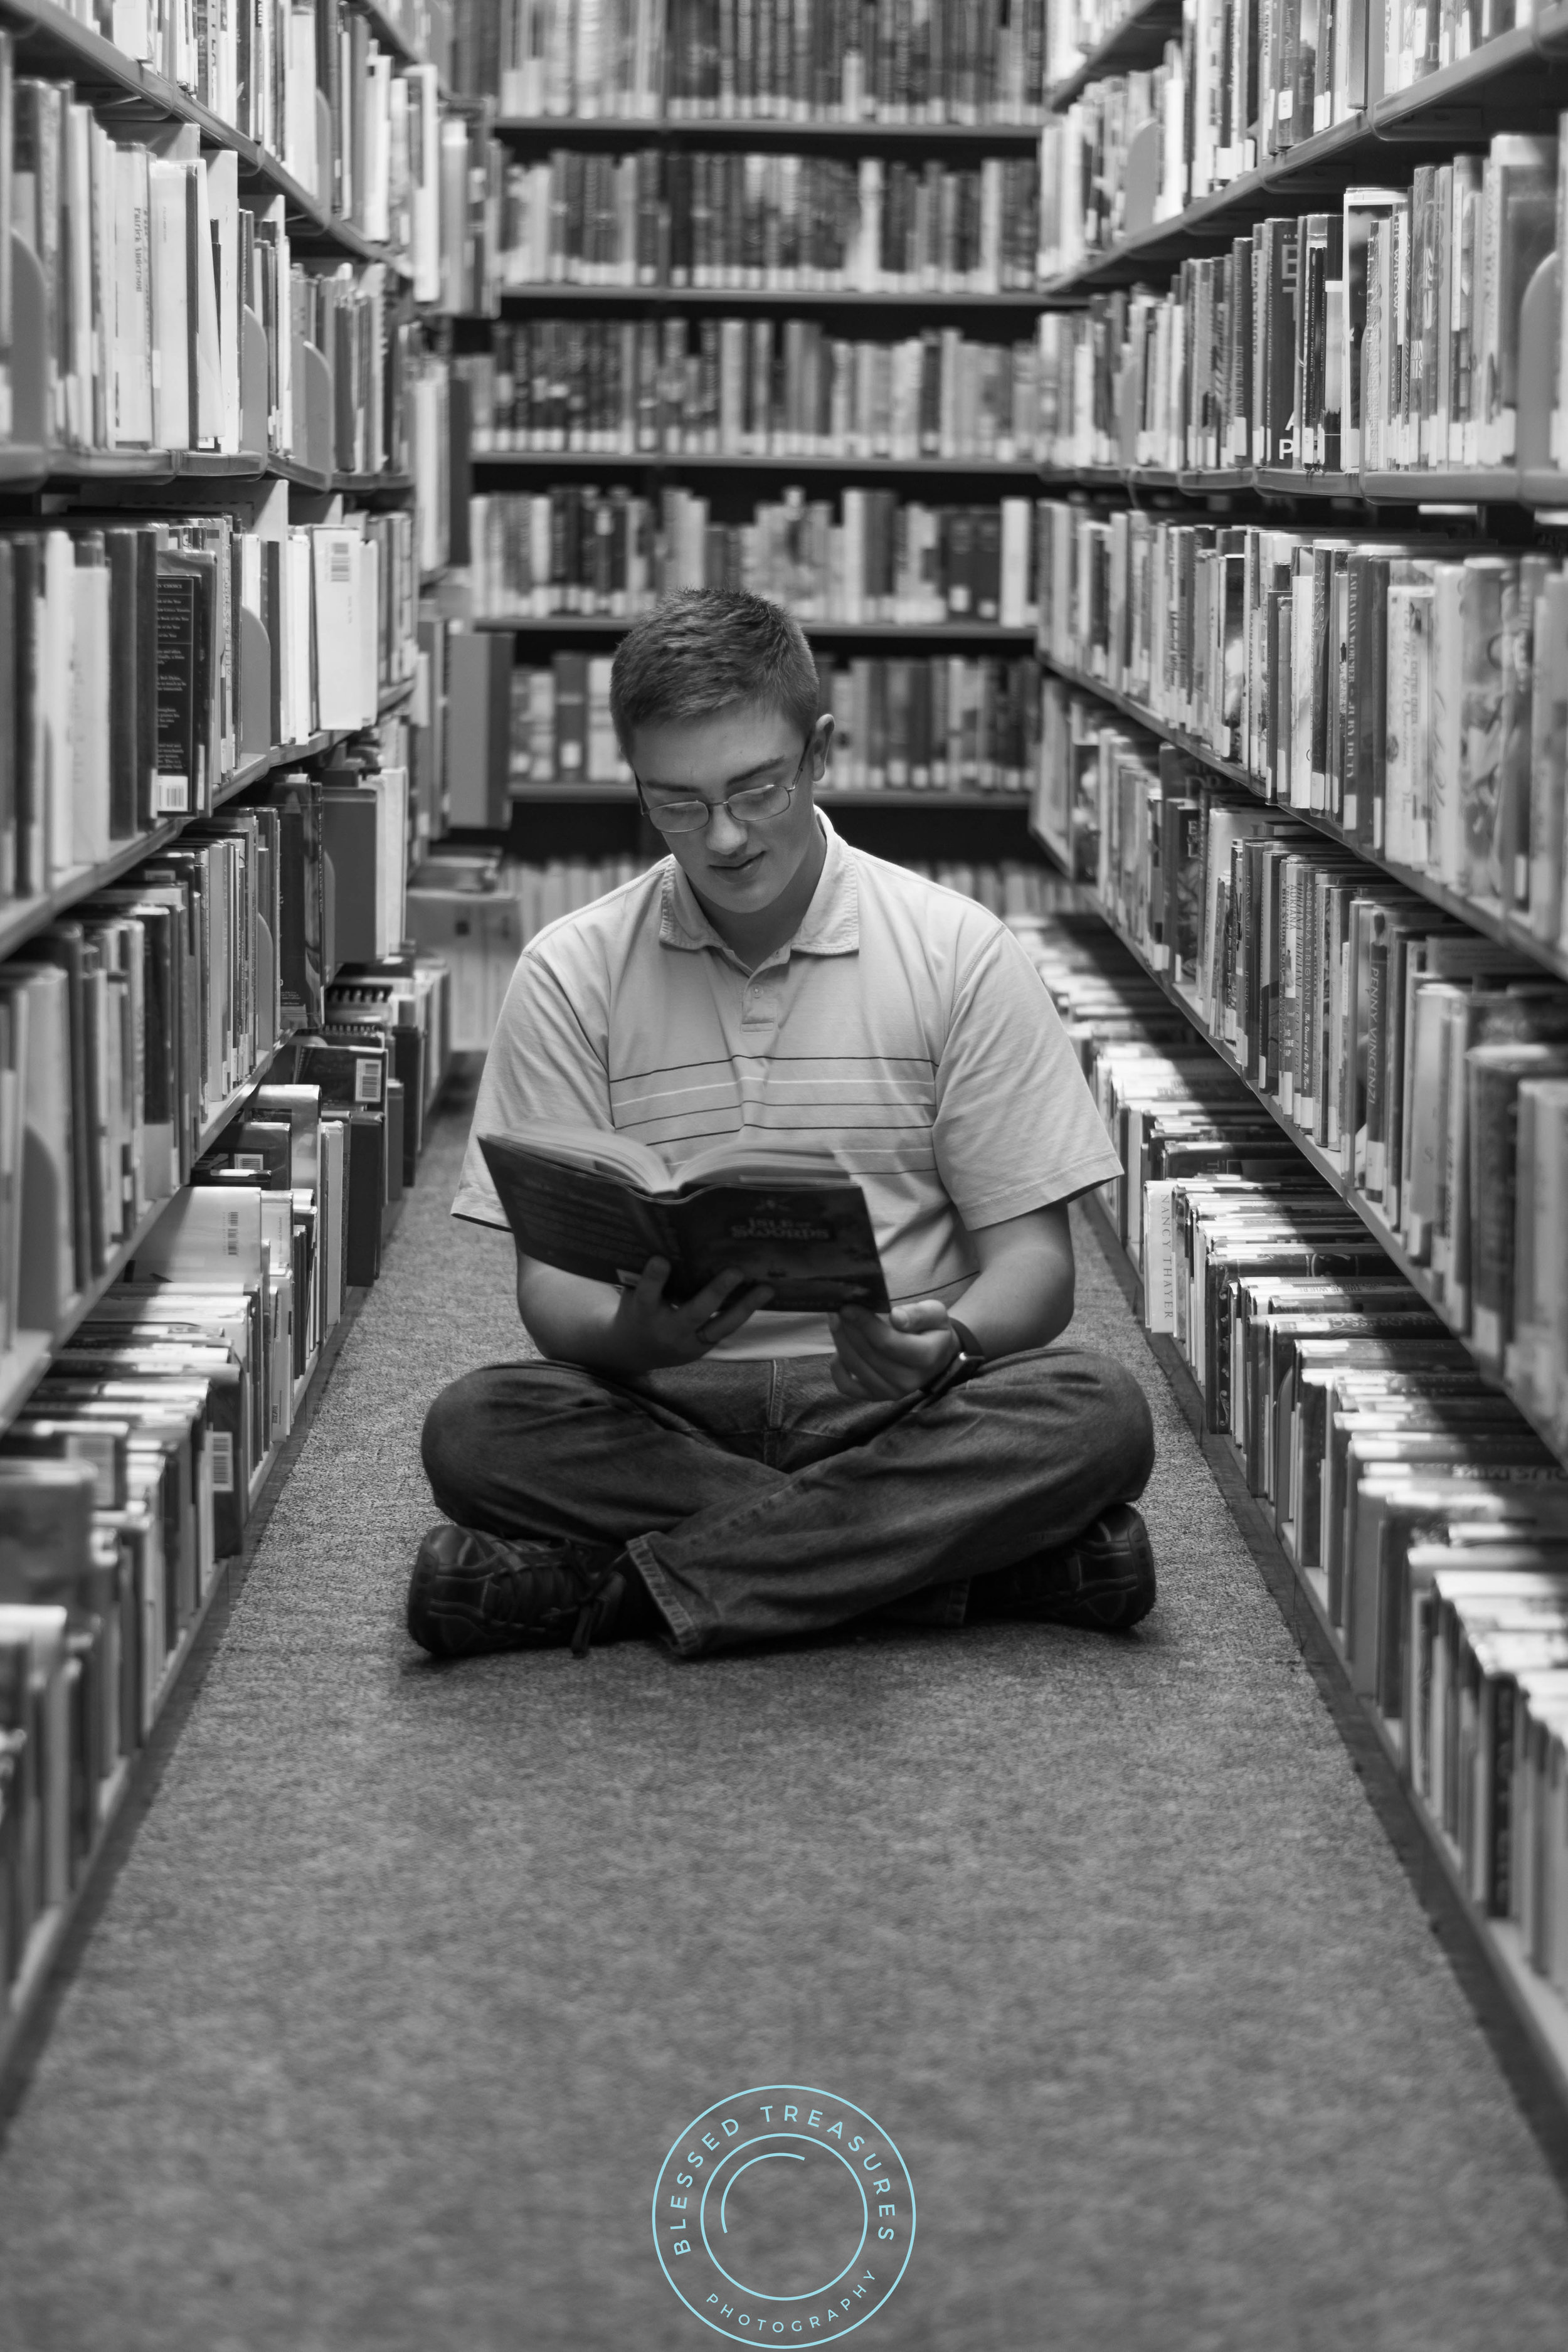 Andrew Navis senior session Iron Mountain Millie Hill bat lookout dickinson county library book reading on floor book shelves bookworm